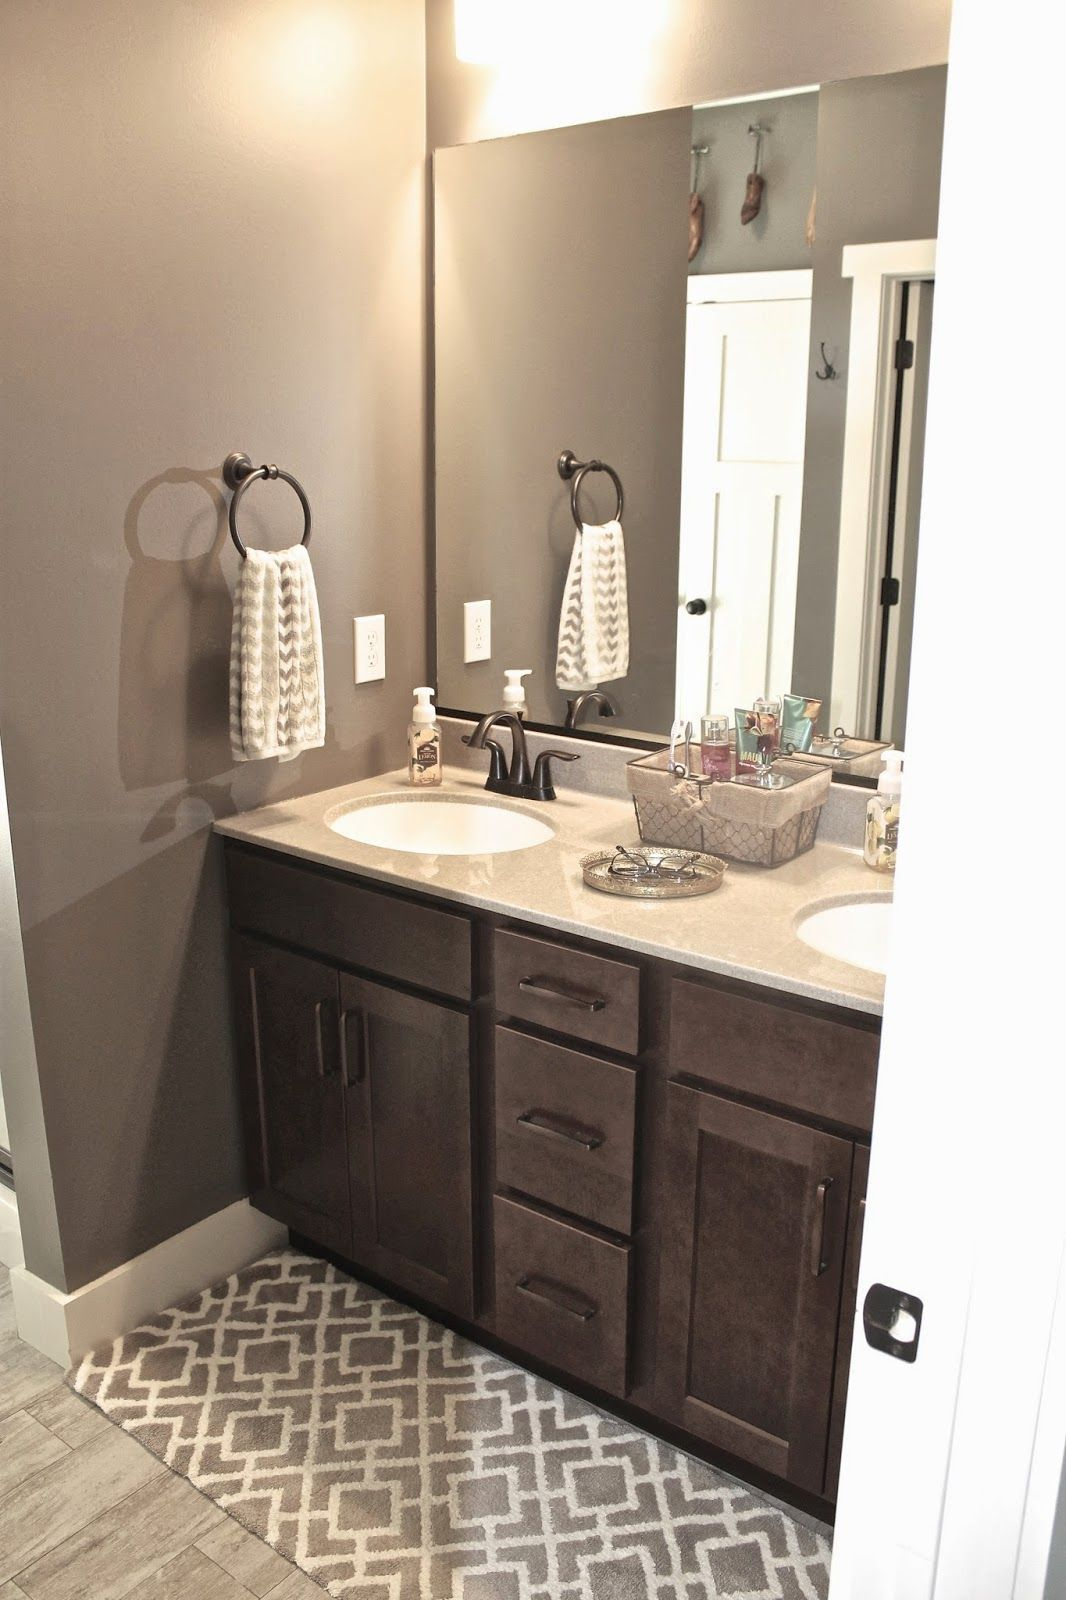 Wall Color Mink By SherwinWilliamsTrim Color Dover White By - Dark brown bathroom rugs for bathroom decorating ideas